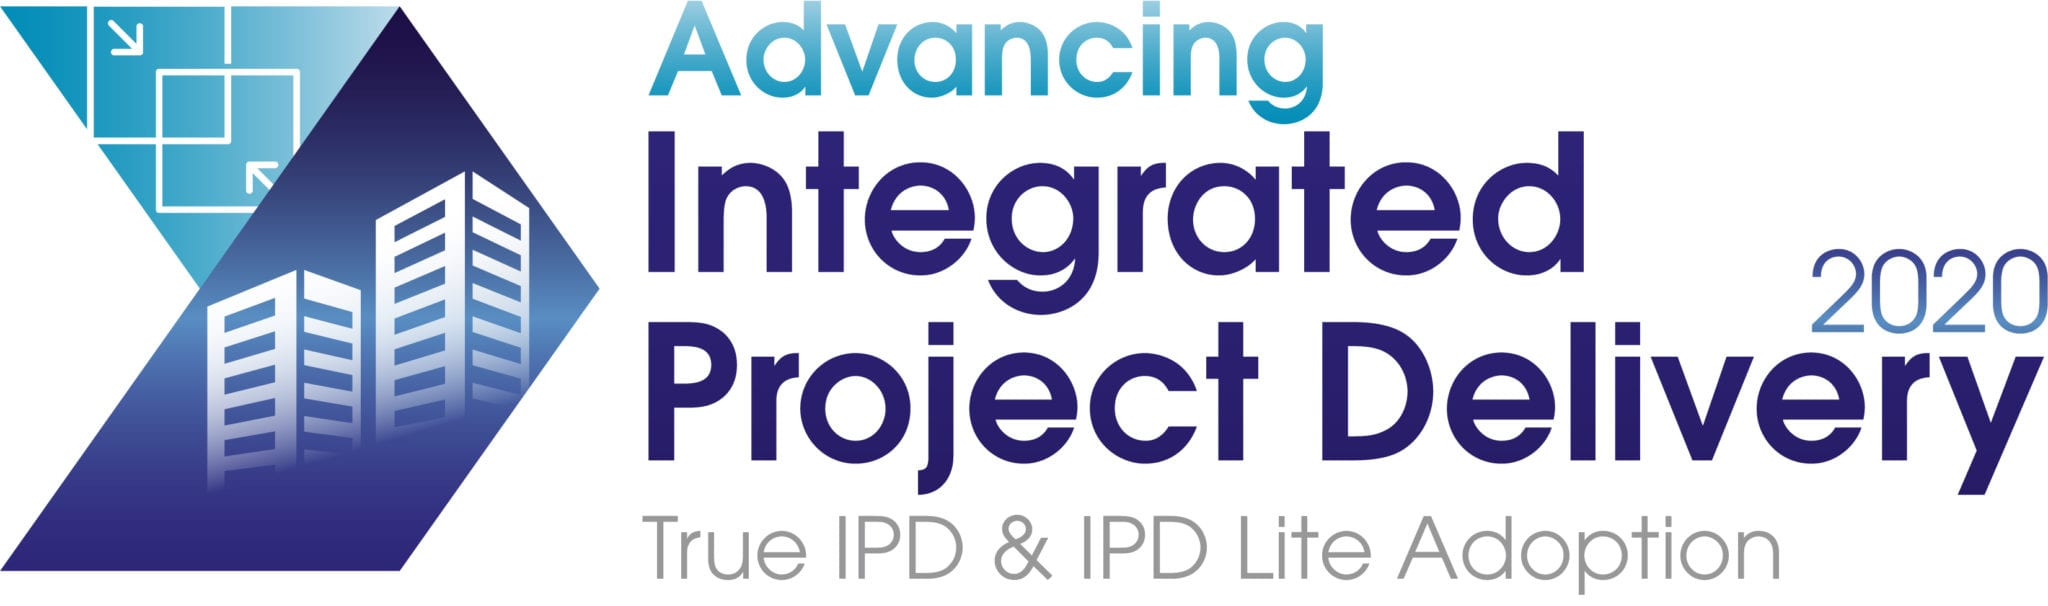 HW191001 HW180712 Advancing Integrated Project Delivery 2020